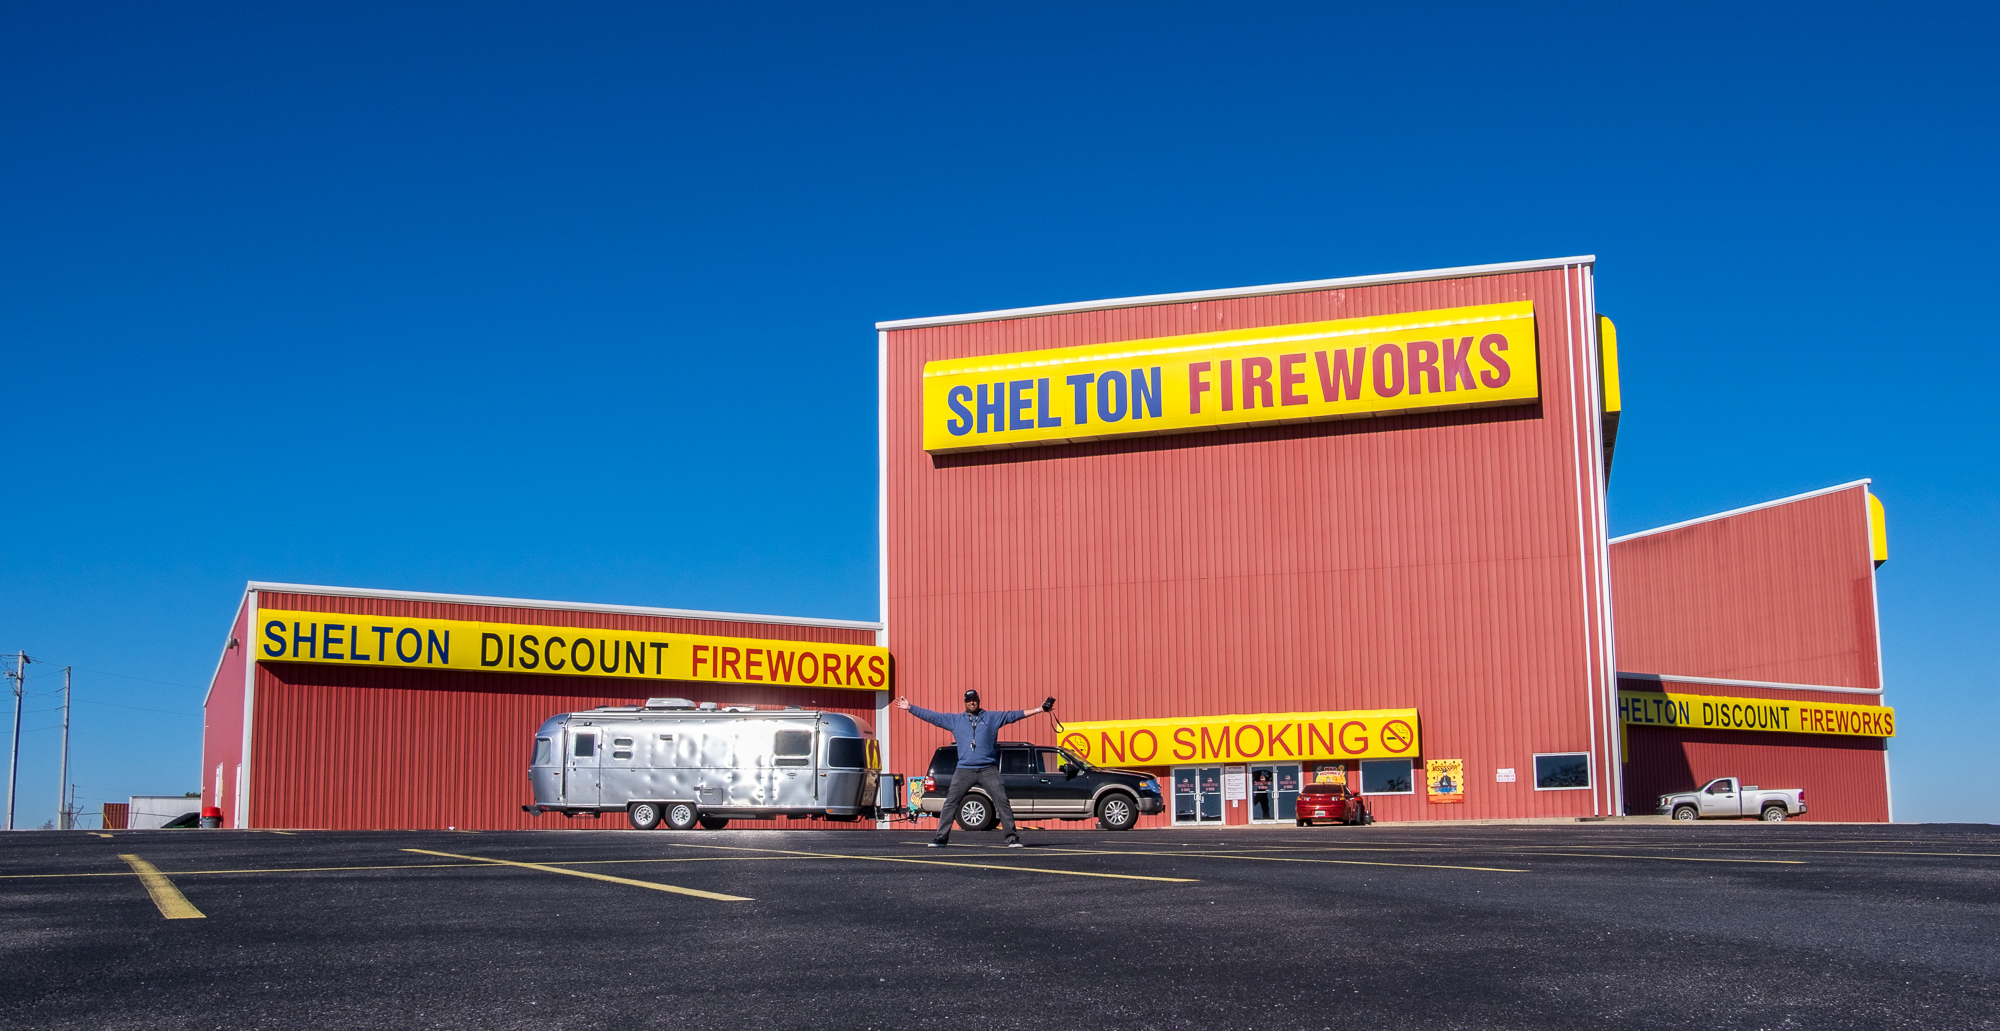 Before arriving in Hot Springs we HAD to stop at this insanely cool fireworks store. Every childhood, and many adulthood, wishes are granted in this store. If you happen to meet up with us somewhere and suddenly hear a very large BANG, you'll know why.